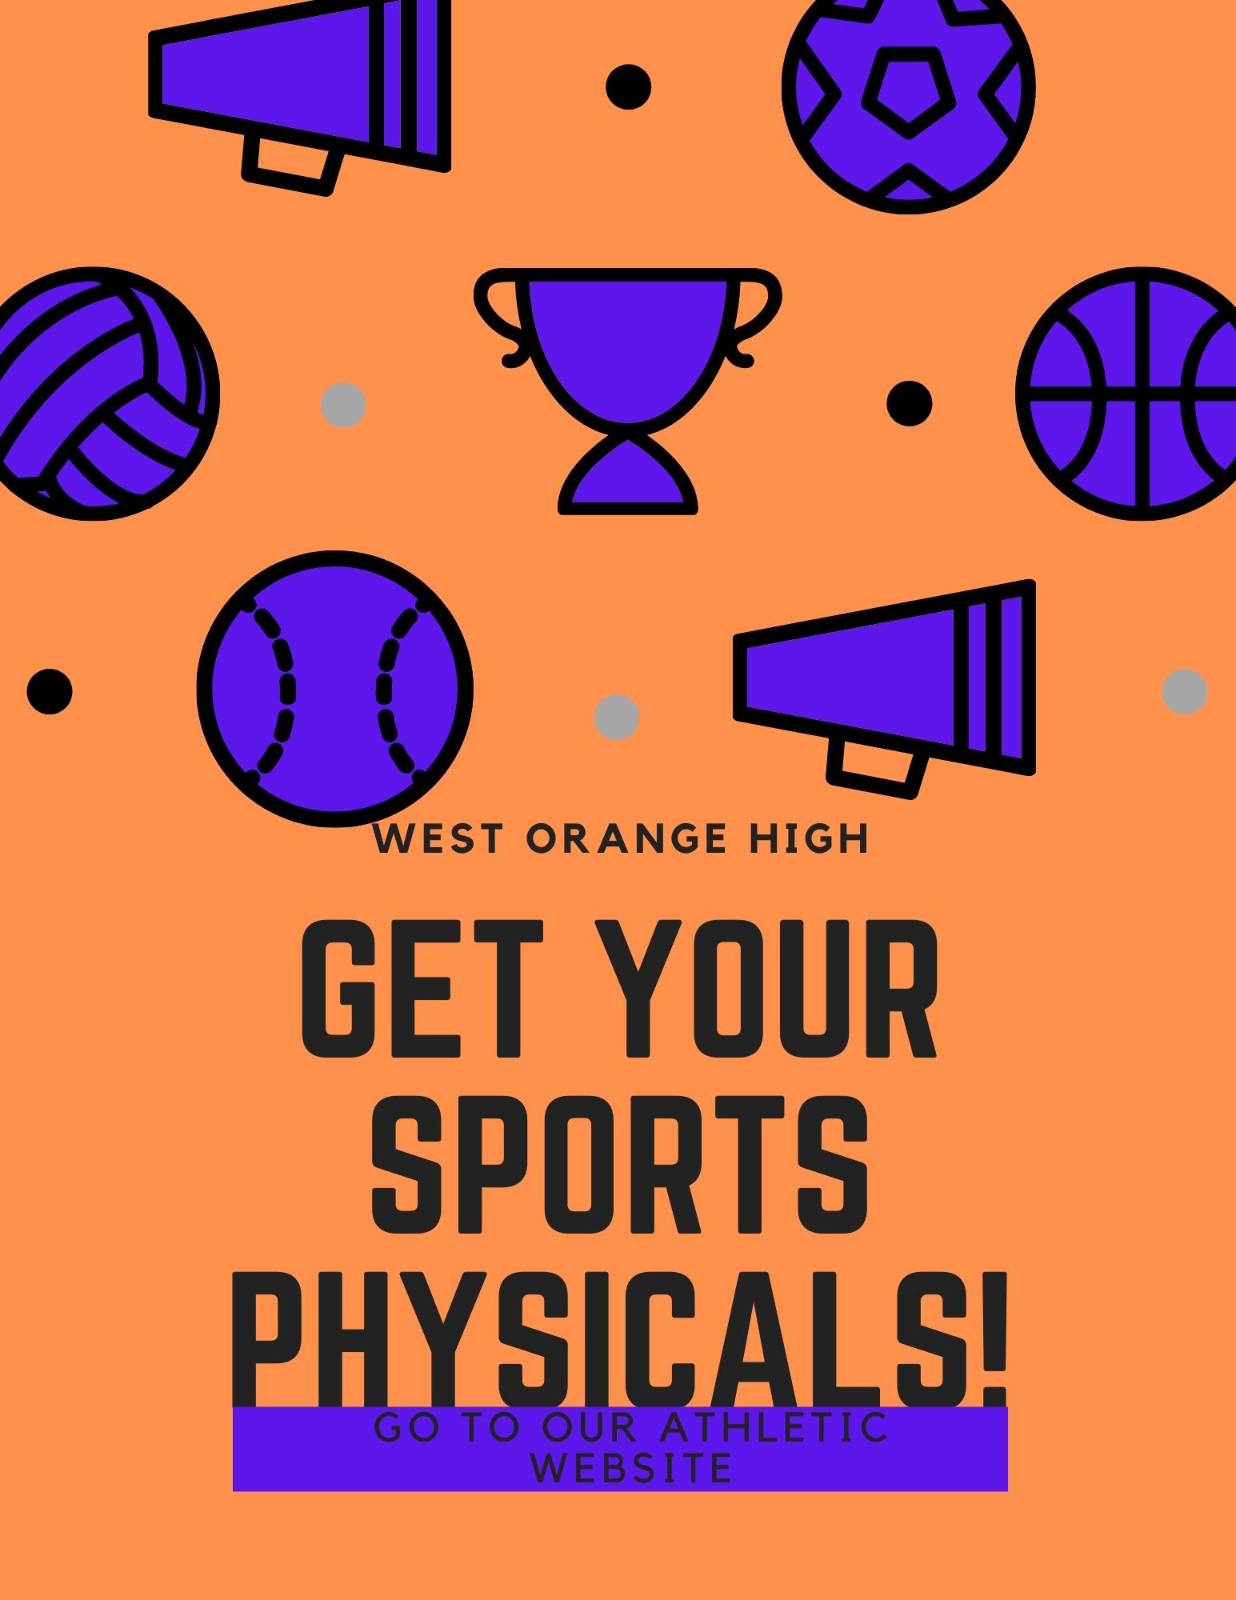 Athletic Physicals Are Going Digital: Get Your Info Here